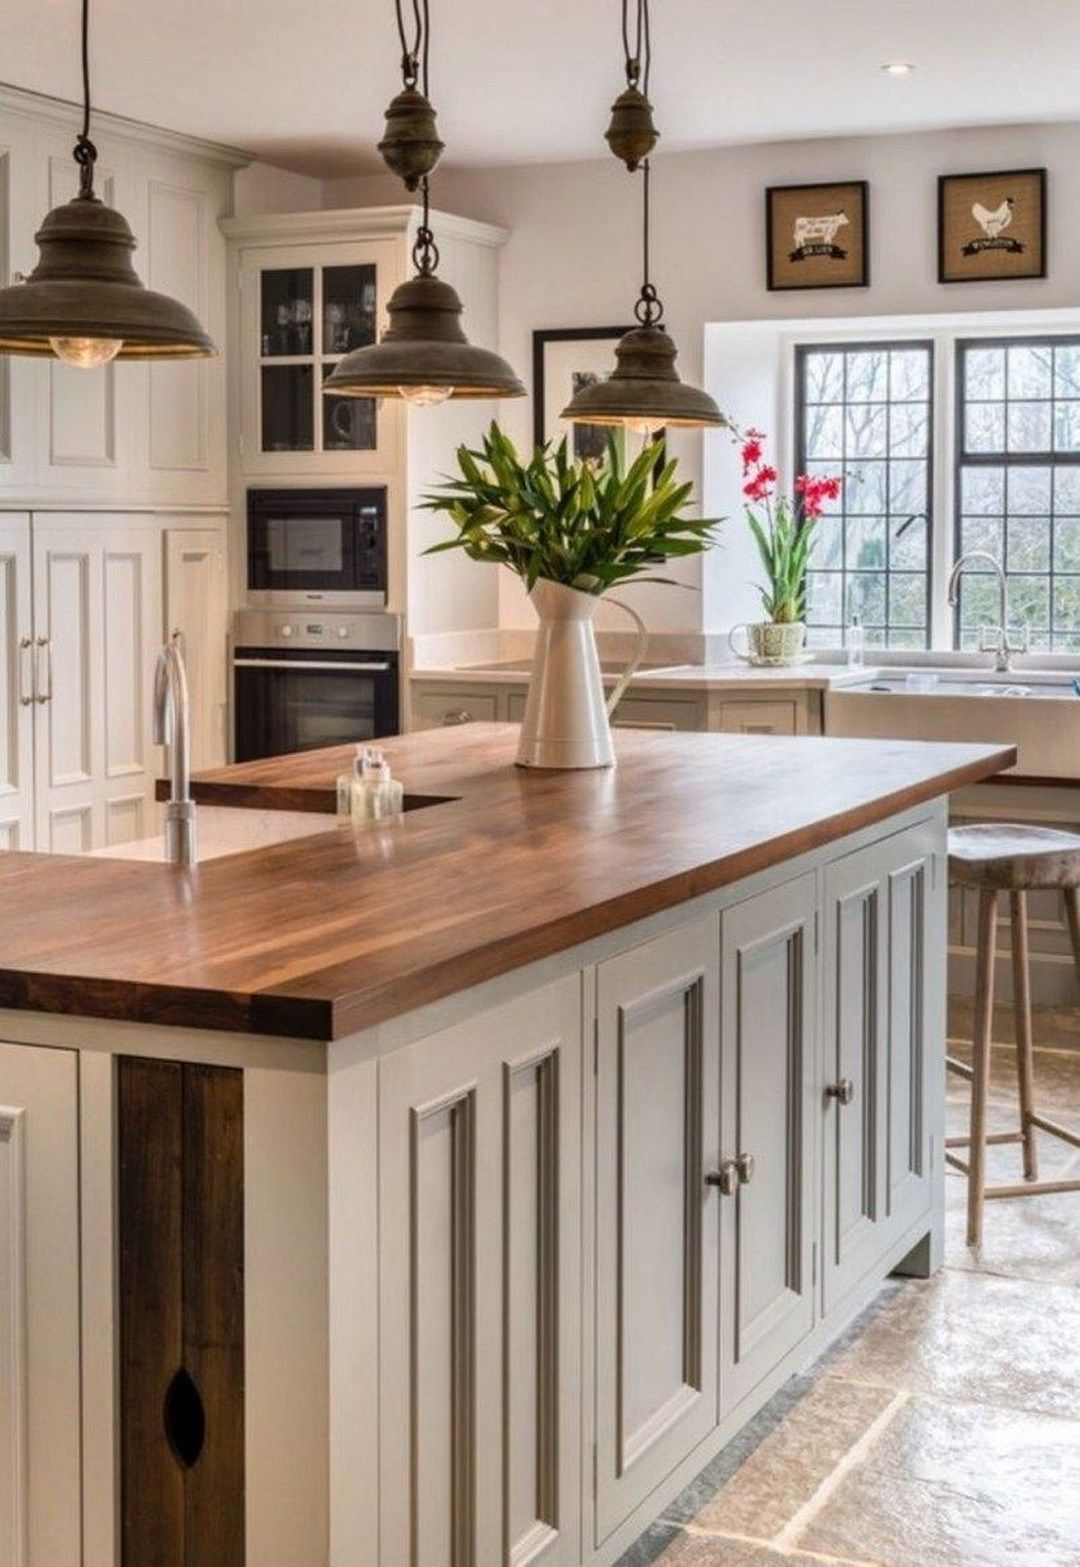 34 kitchen island ideas for inspiration on creating your on best farmhouse kitchen decor ideas and remodel create your dreams id=17697